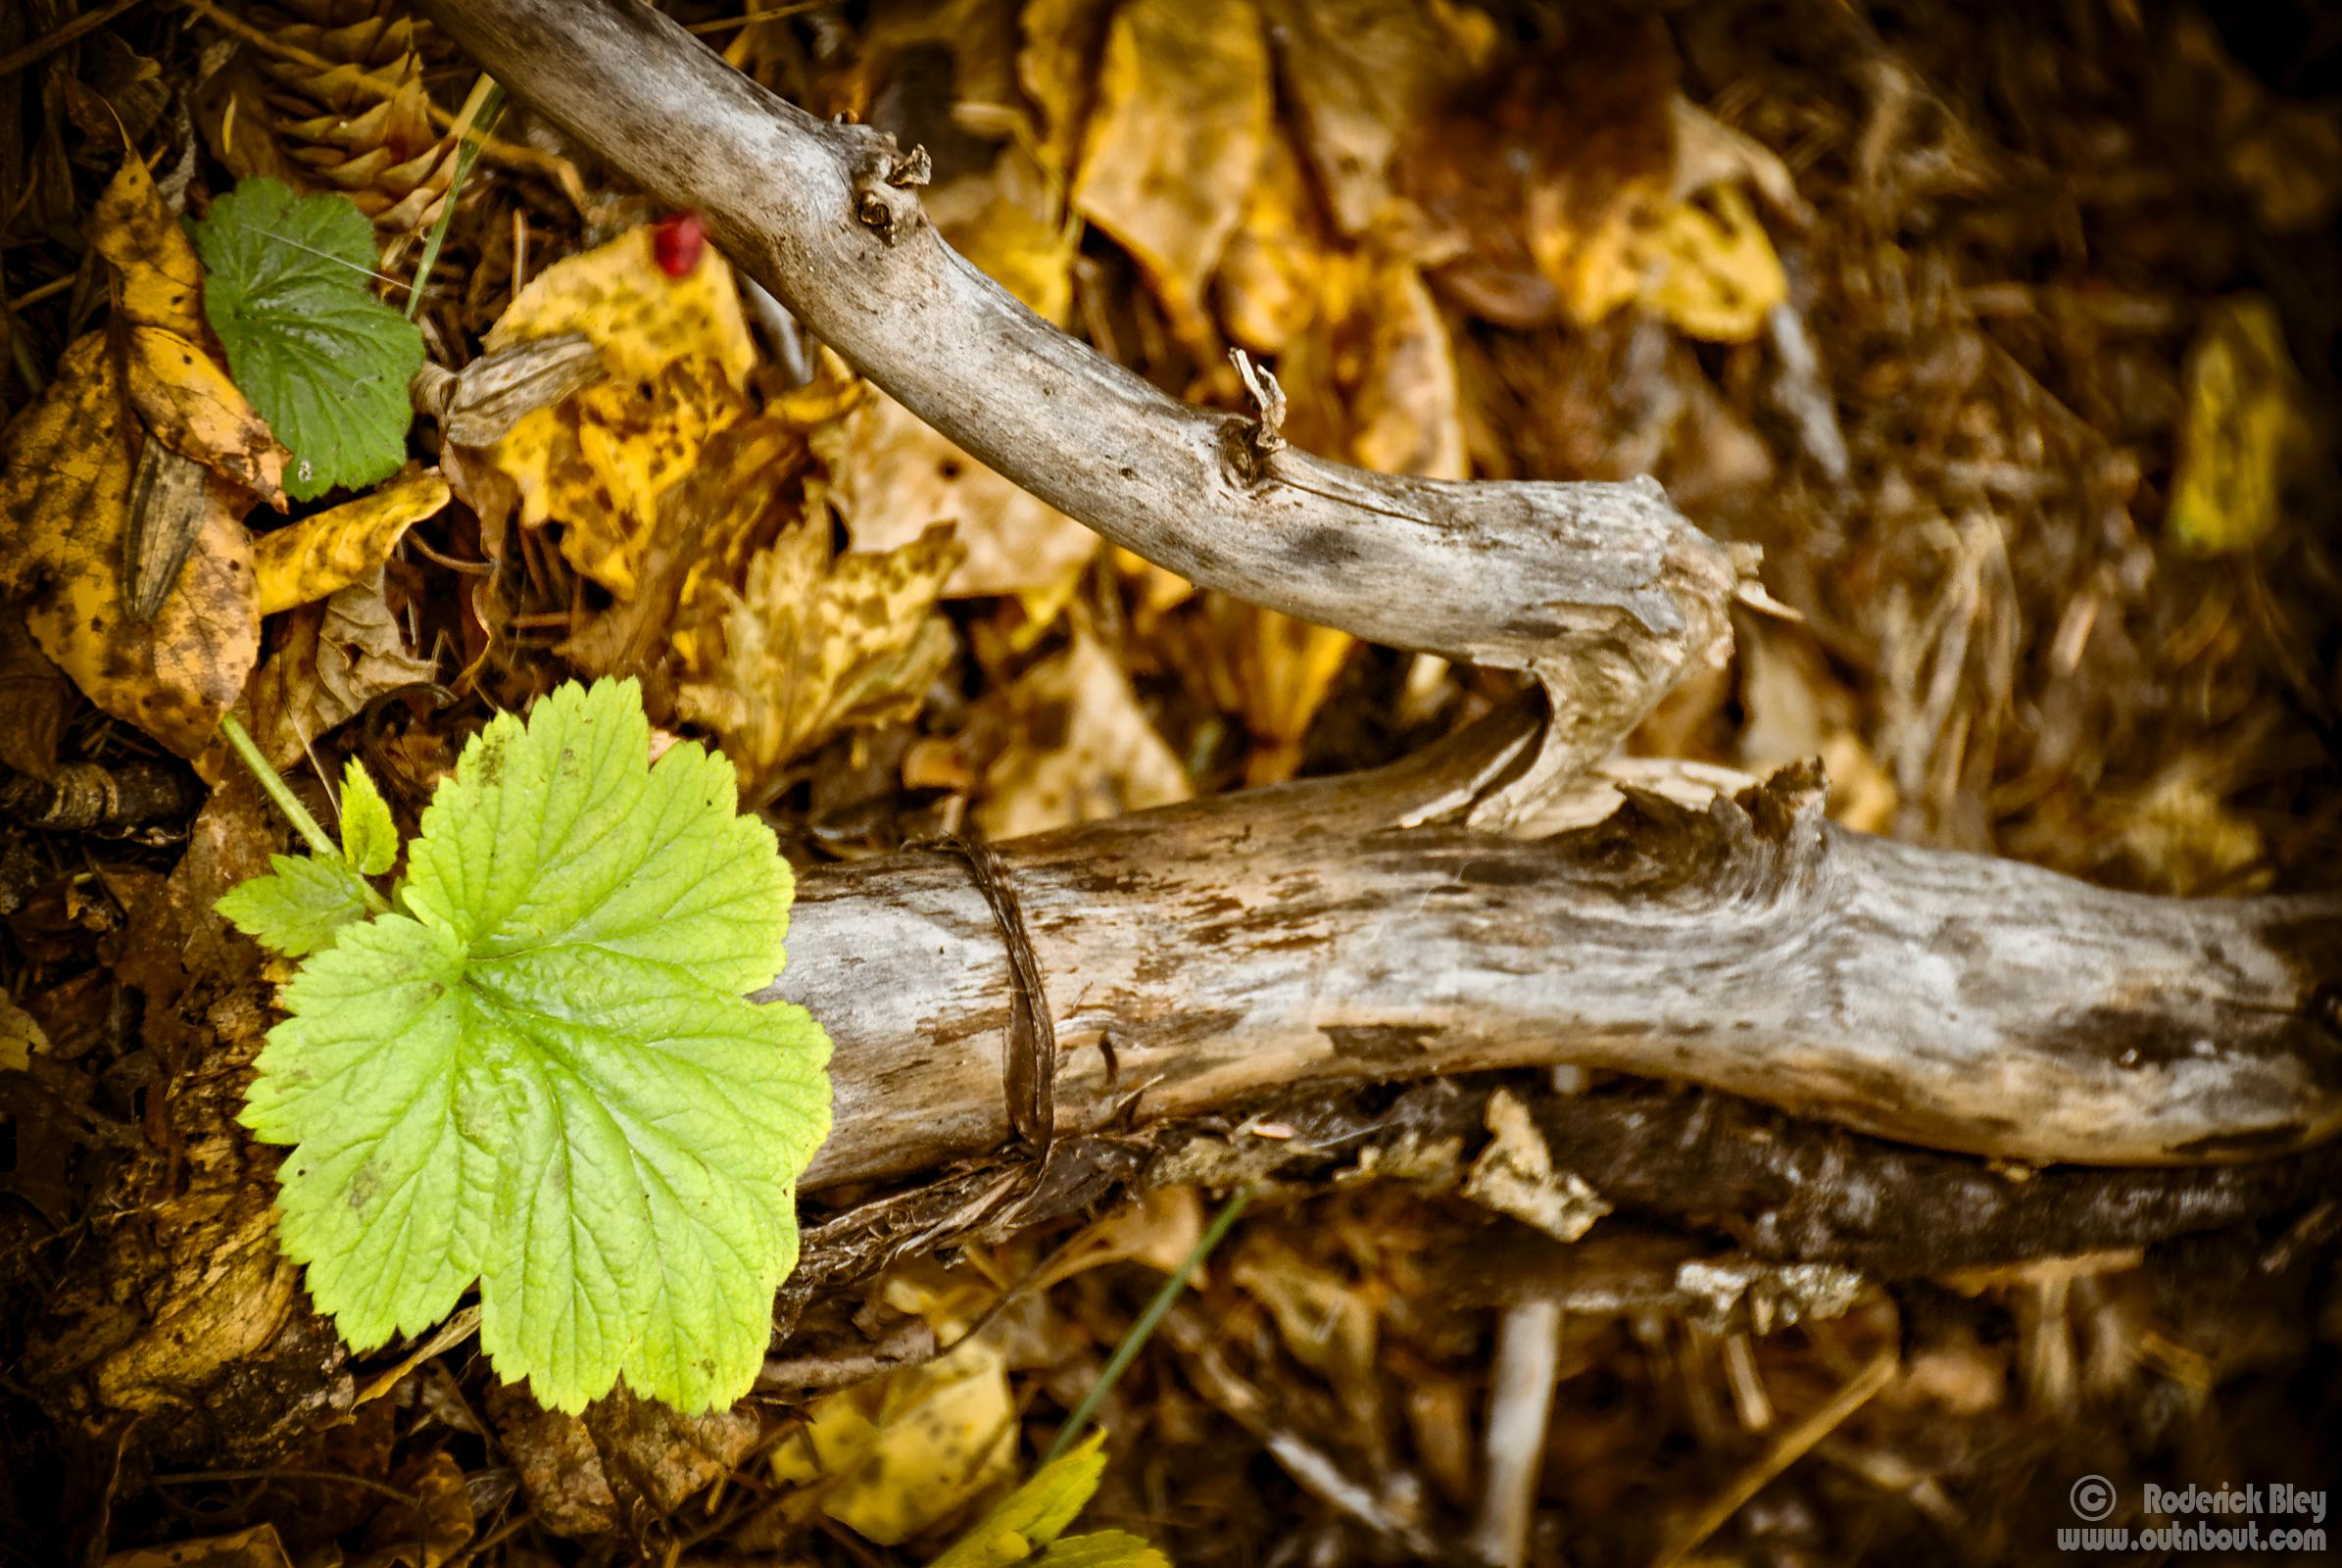 Green Leave in Midst of Fall Decay